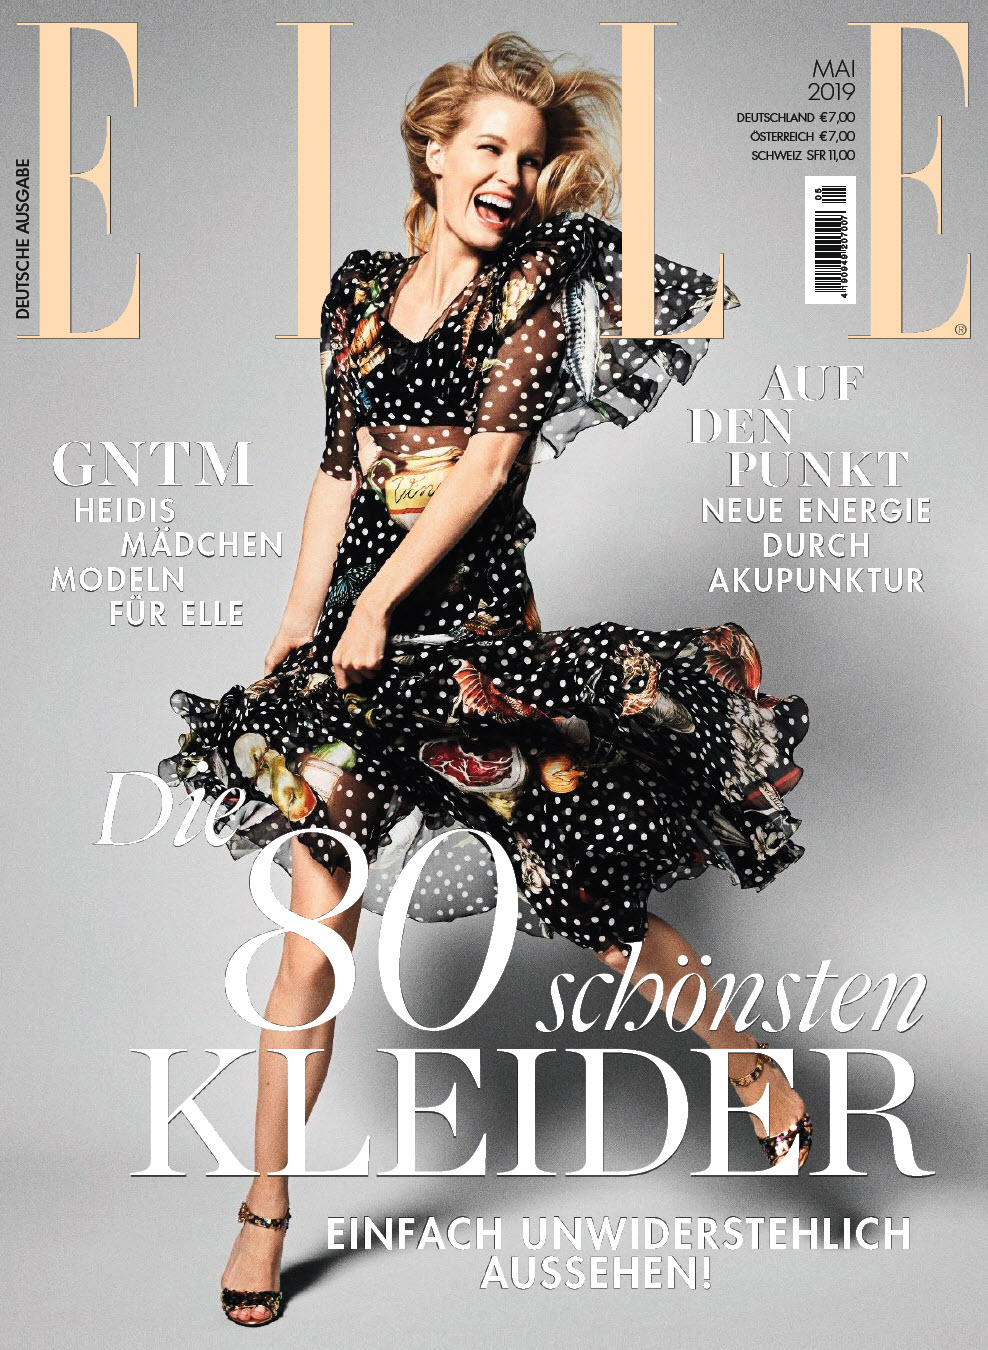 eLLE gERMANY COVR.jpg